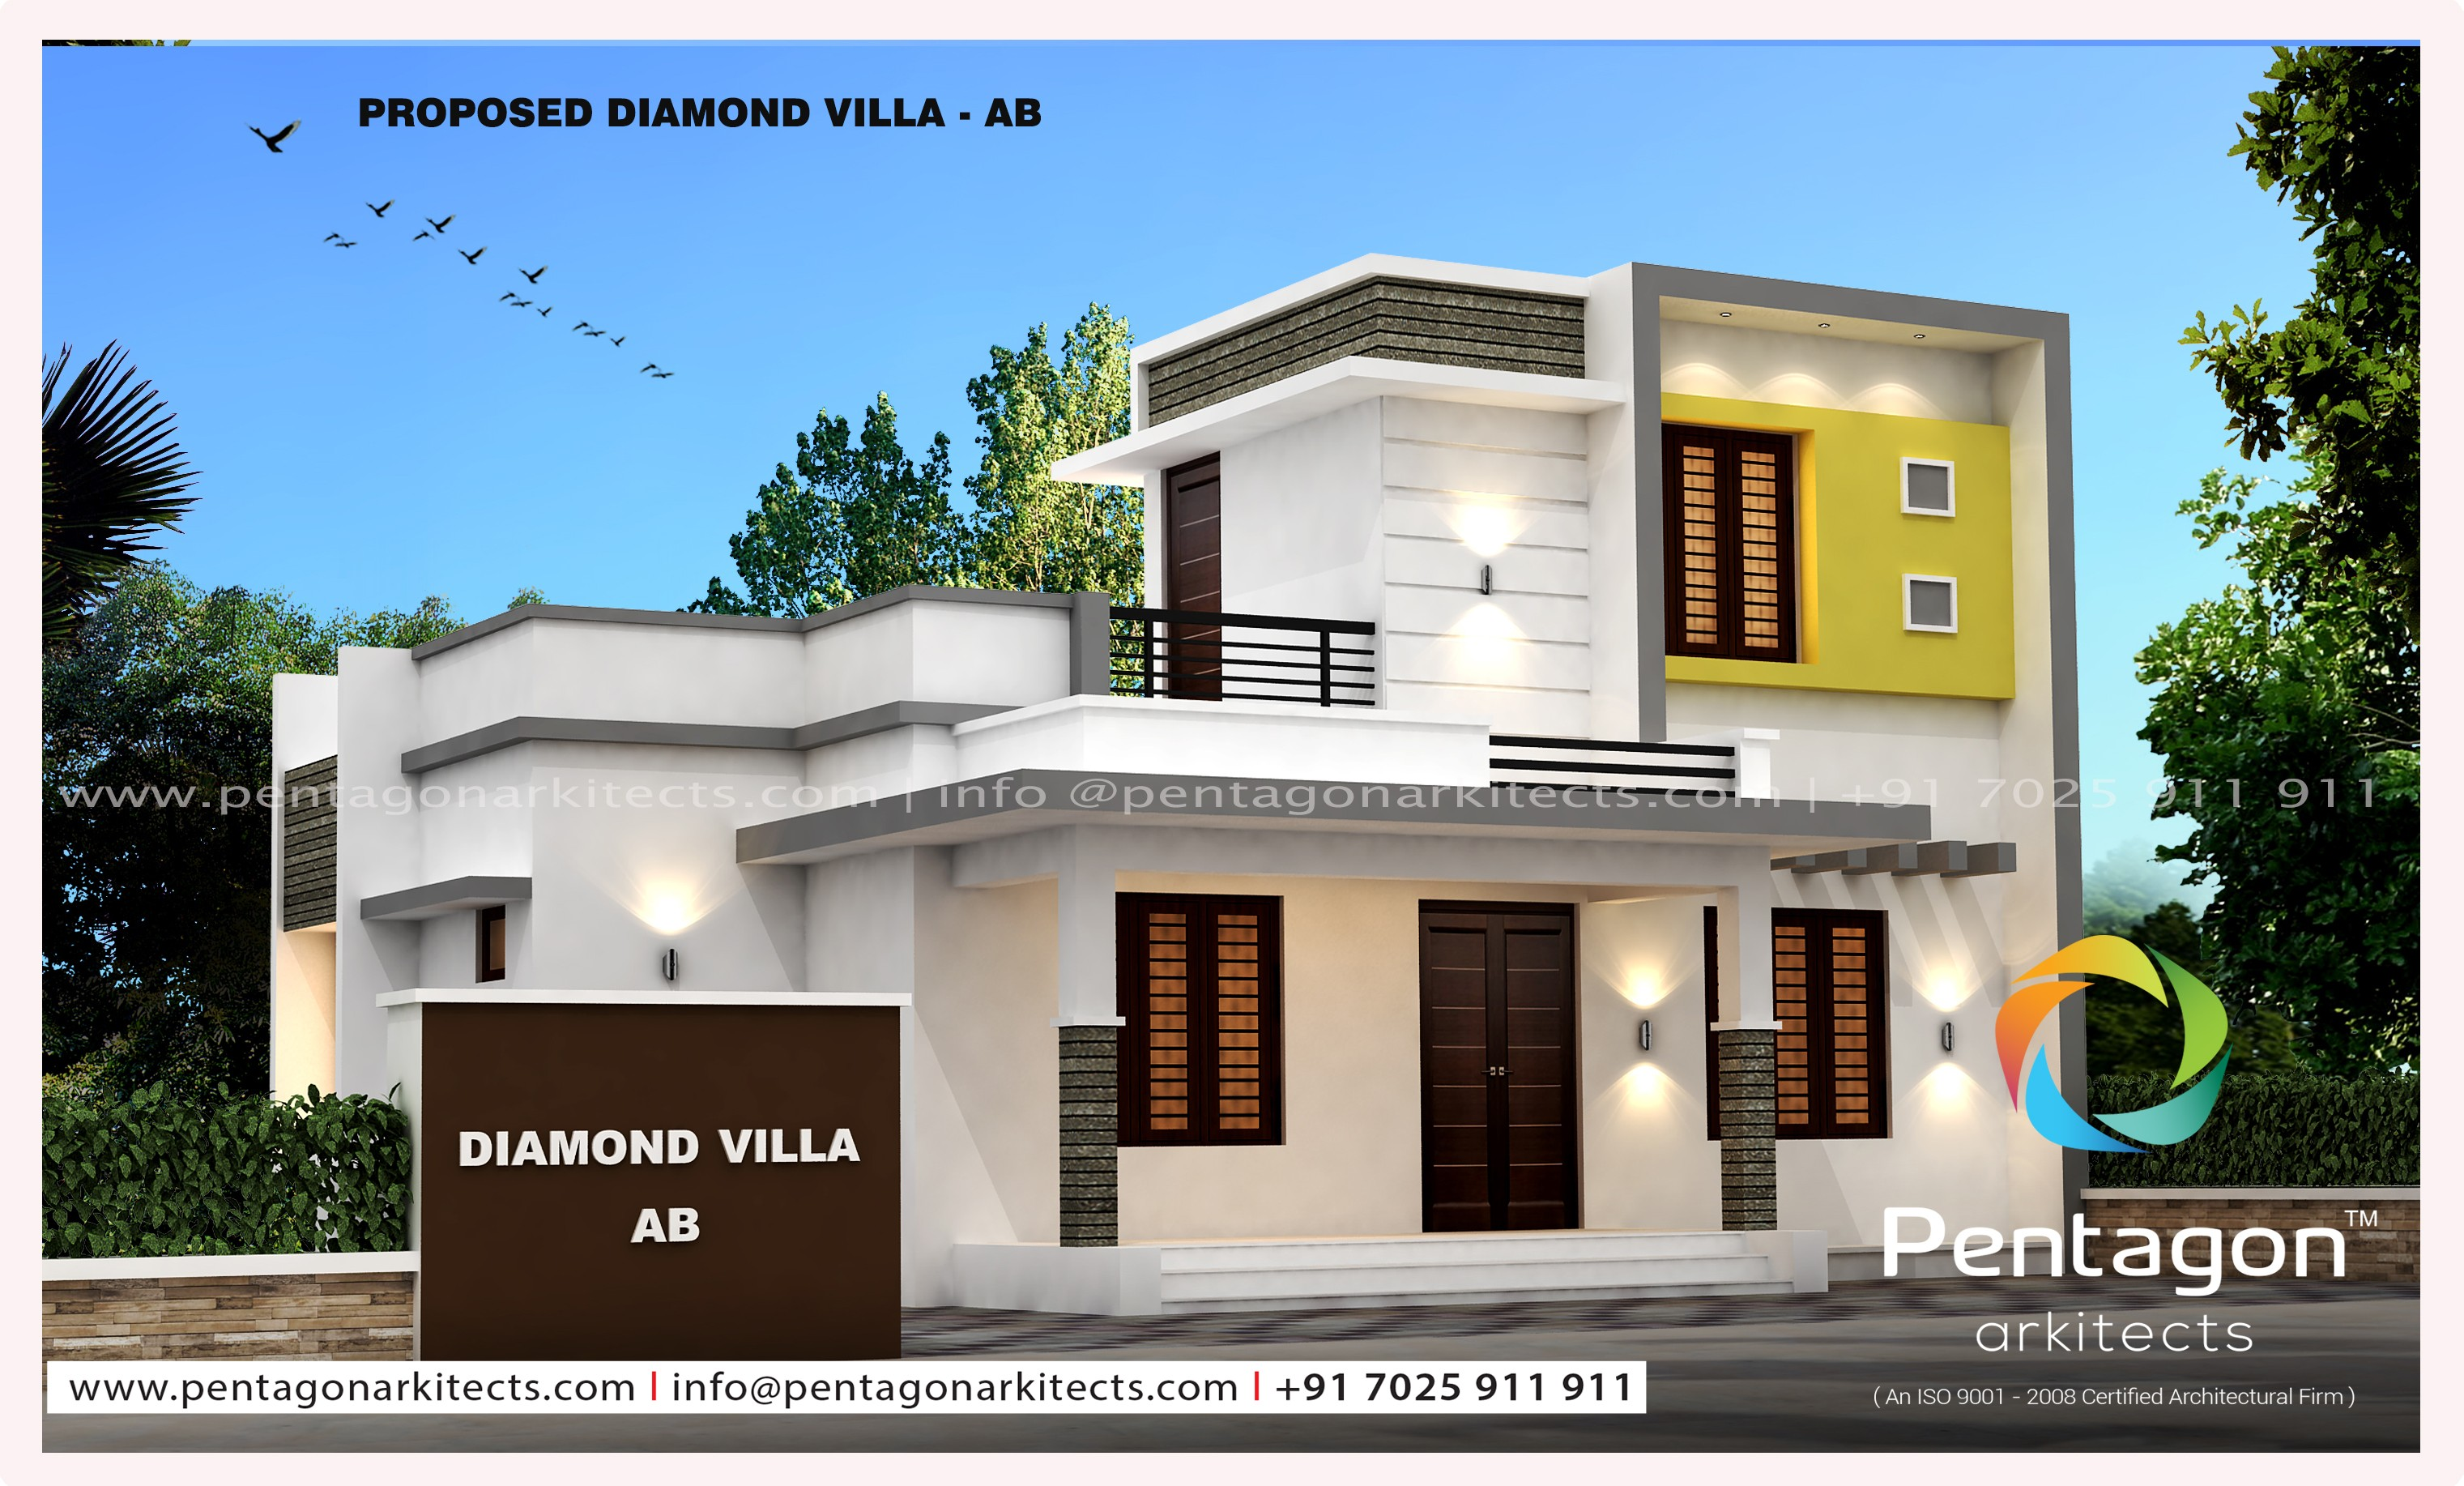 985 square feet 3 bedroom modern contemporary low budget for Low budget modern 3 bedroom house design